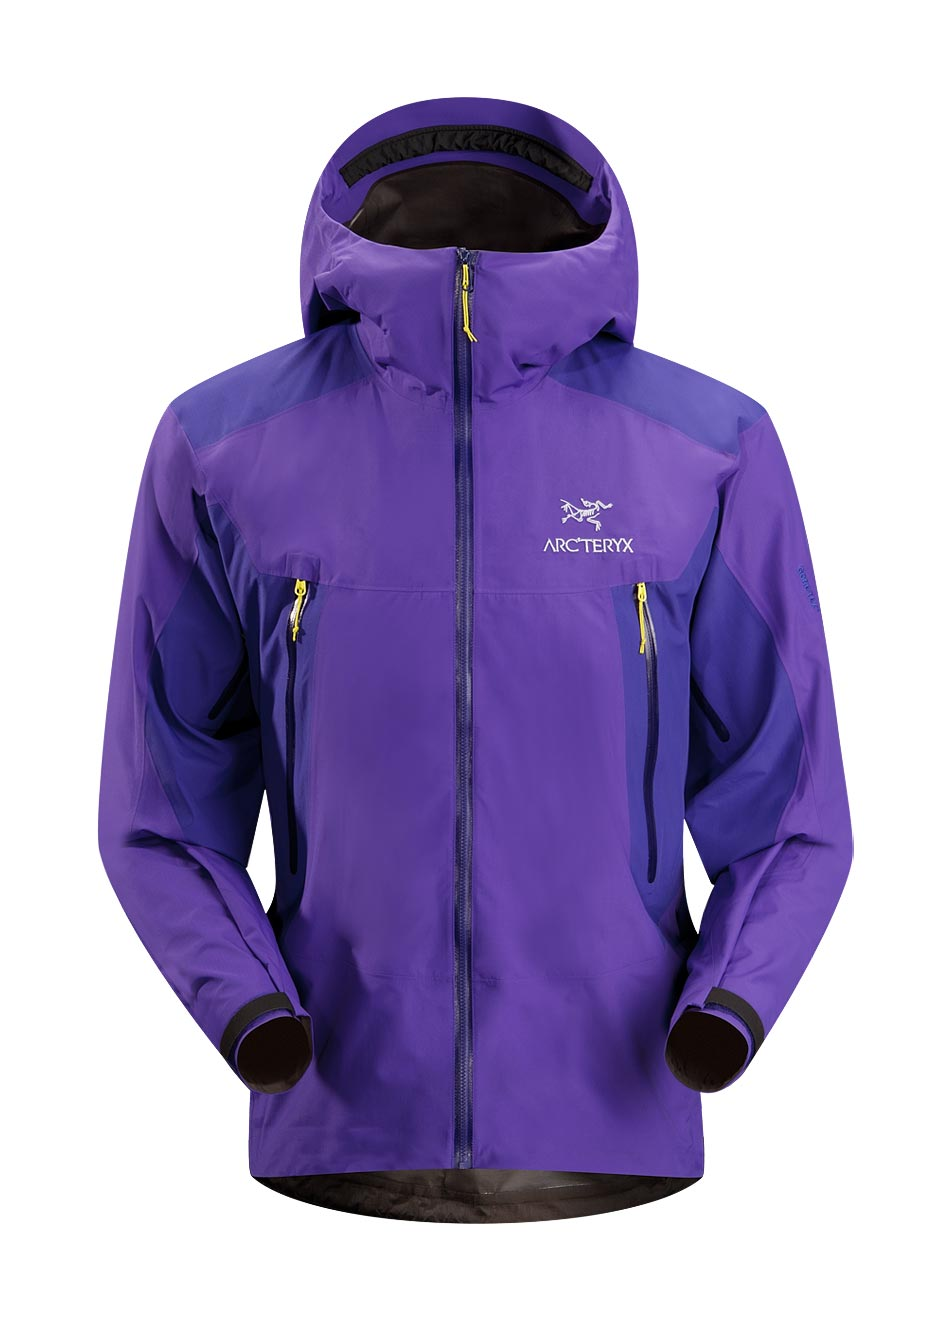 Arcteryx Blue Galaxy Alpha SL Hybrid Jacket - New